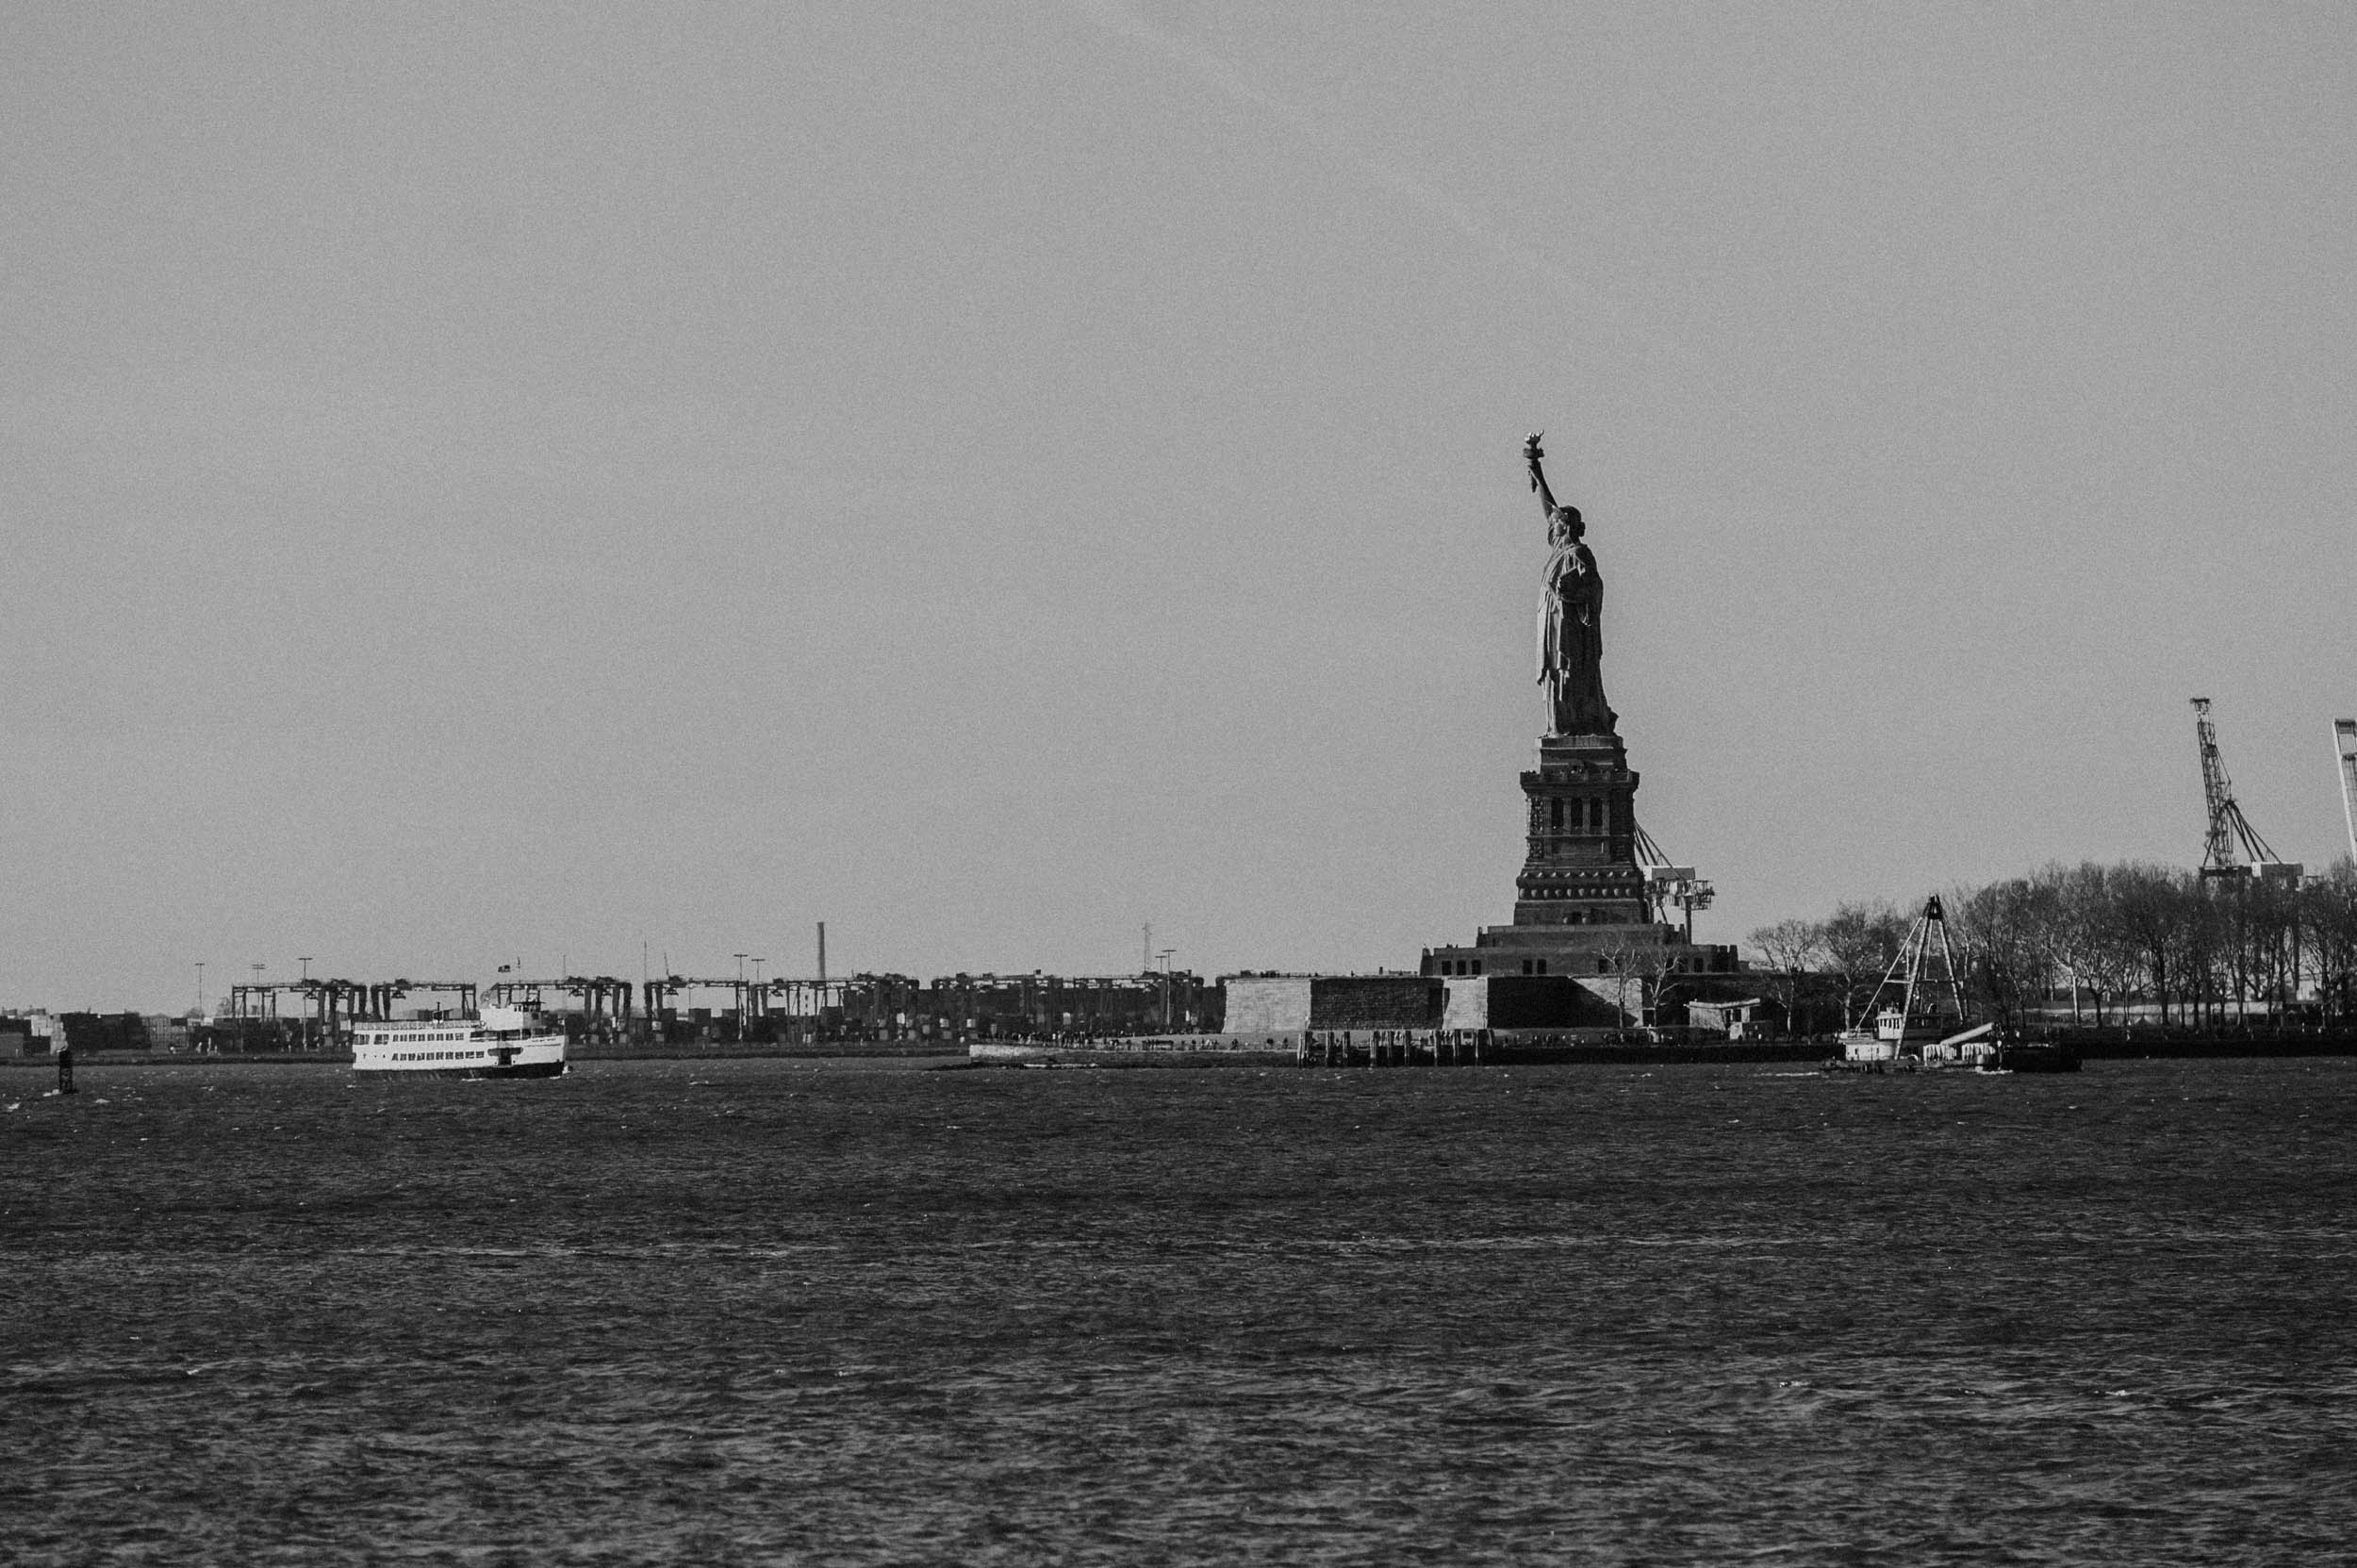 NYC-LoRes-38.jpg